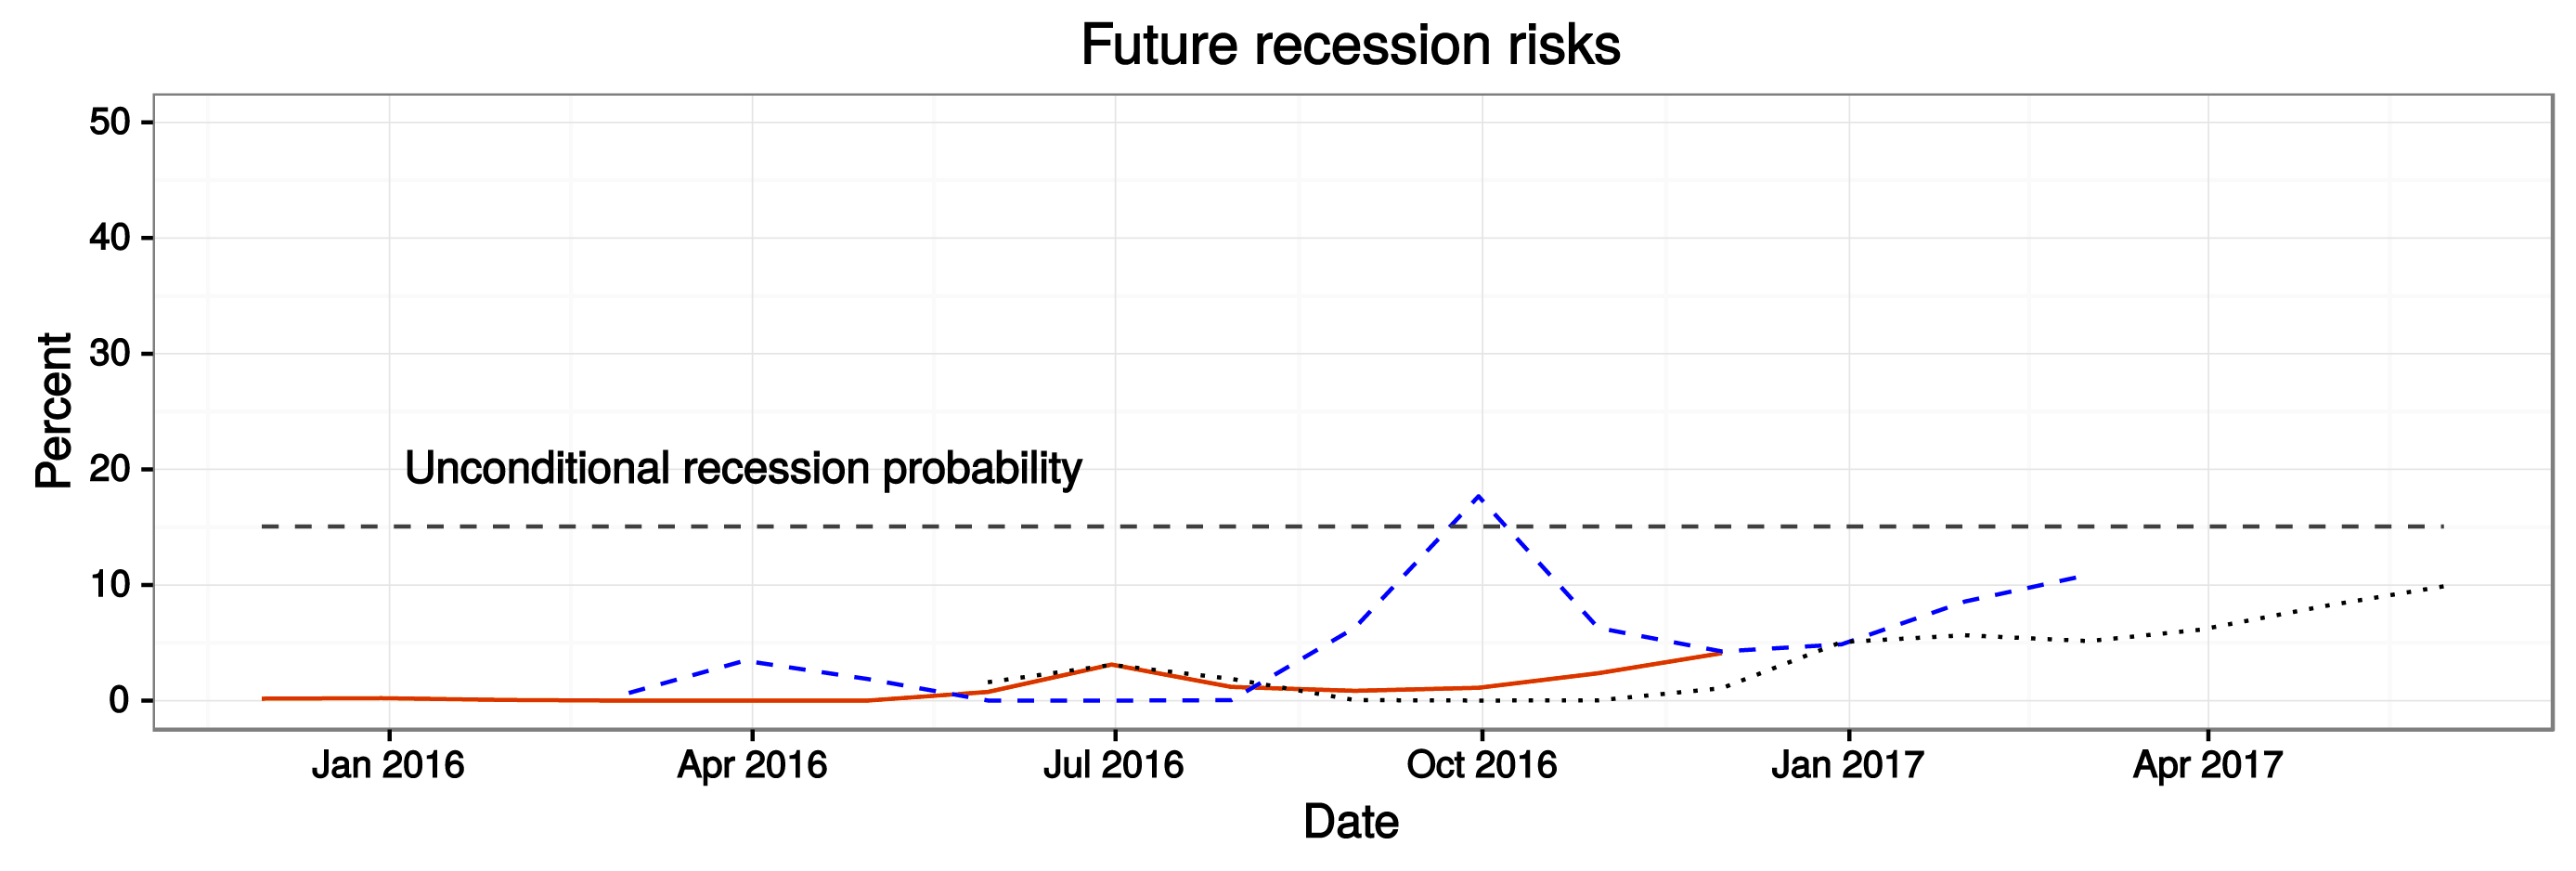 Figure 2: The evolution of recession risk. See accessible link for data.